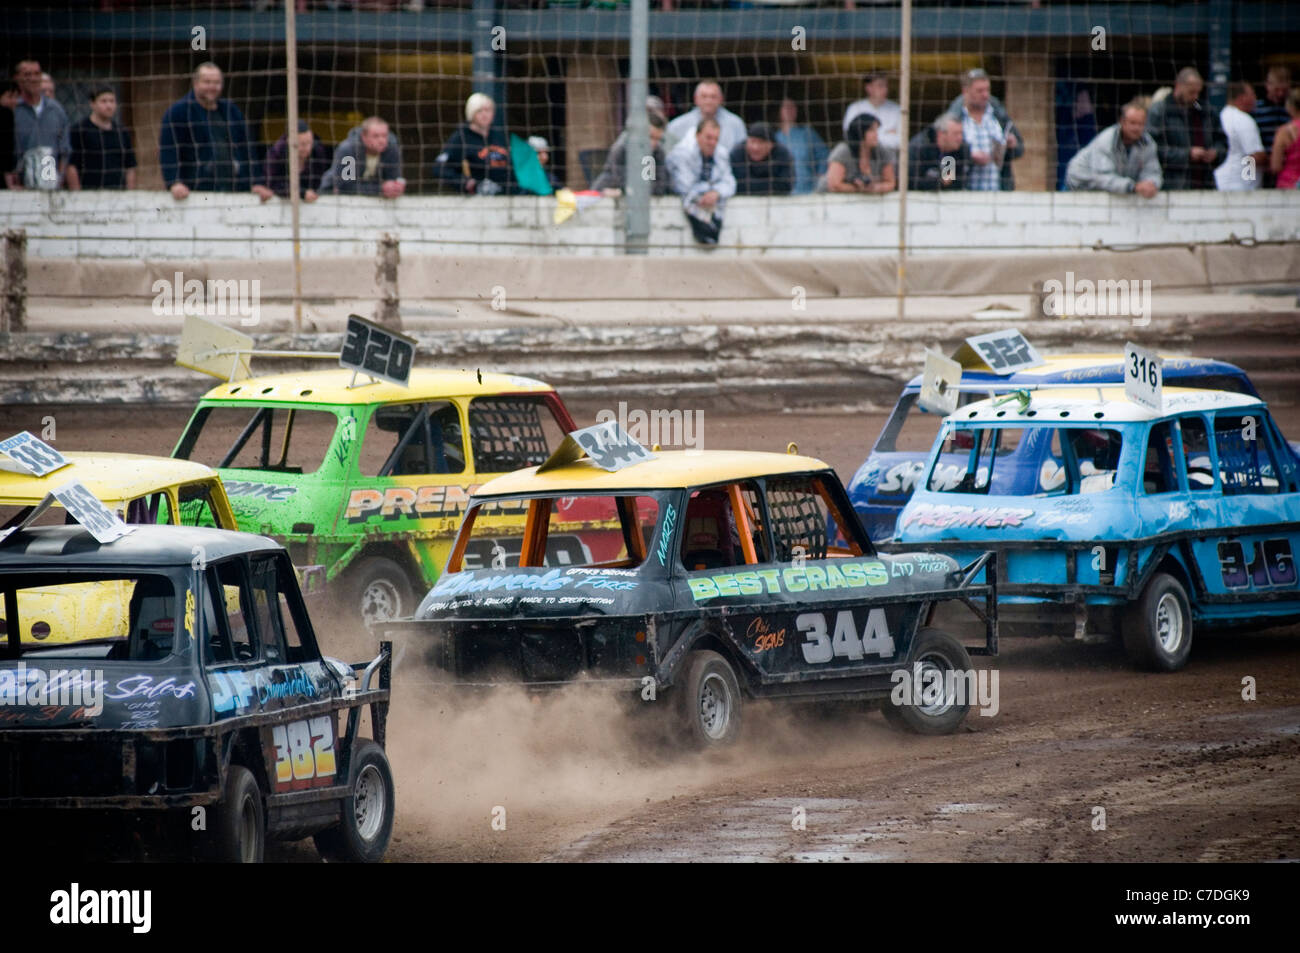 mini stocks car stock cars stockcars stockcar beginner children kids racing old bl minis oval track